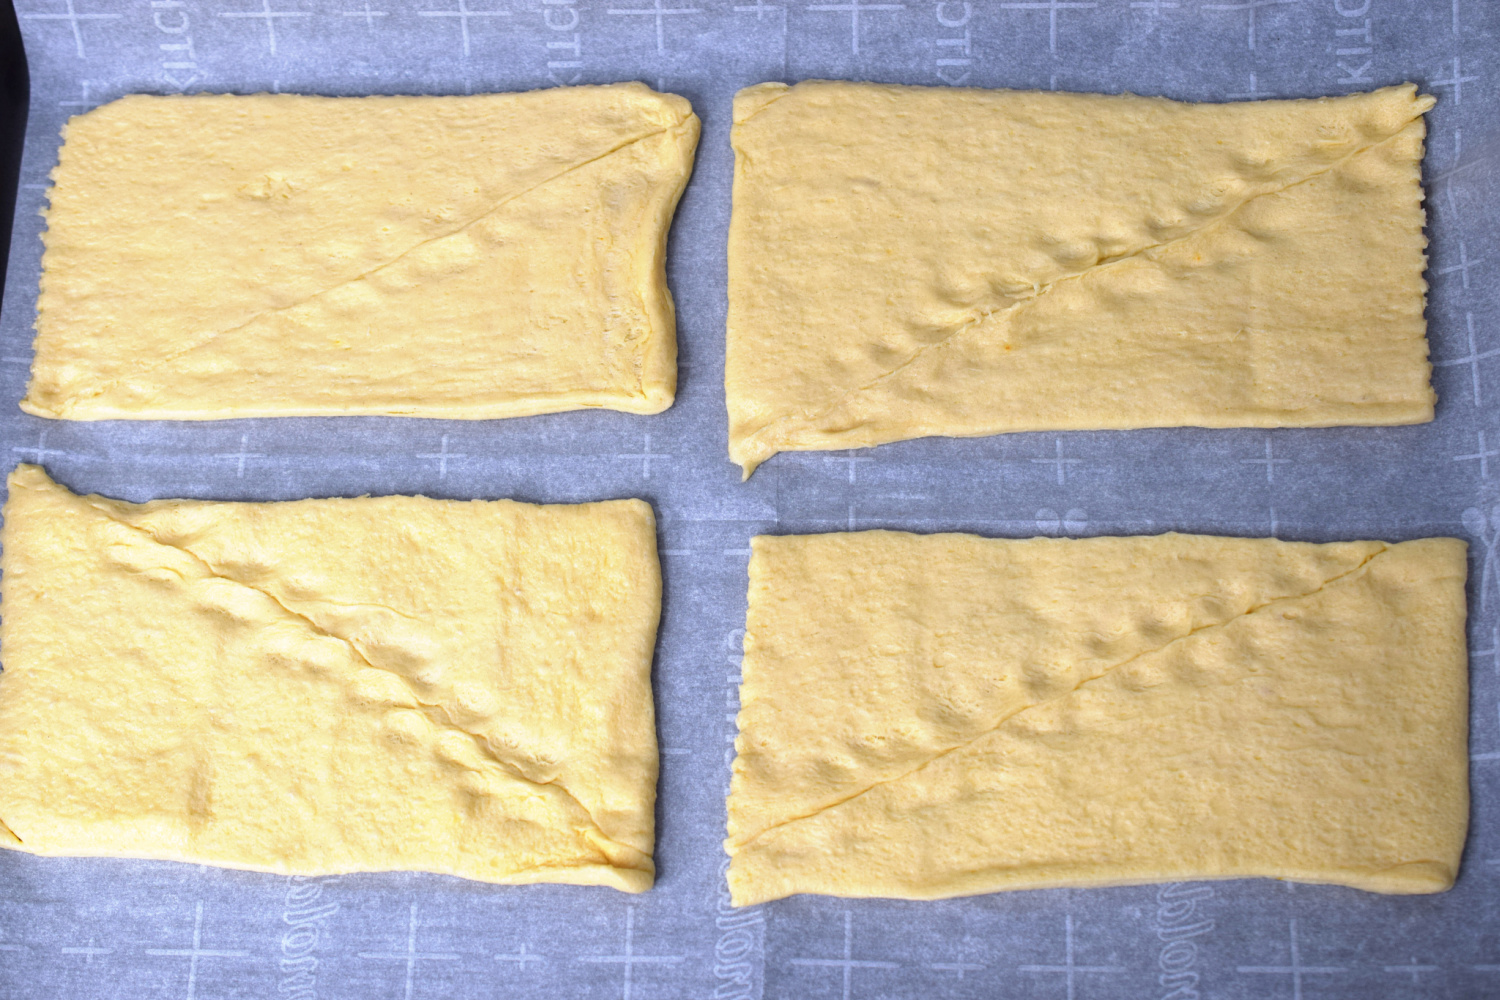 Crescent rolls separated into rectangles.